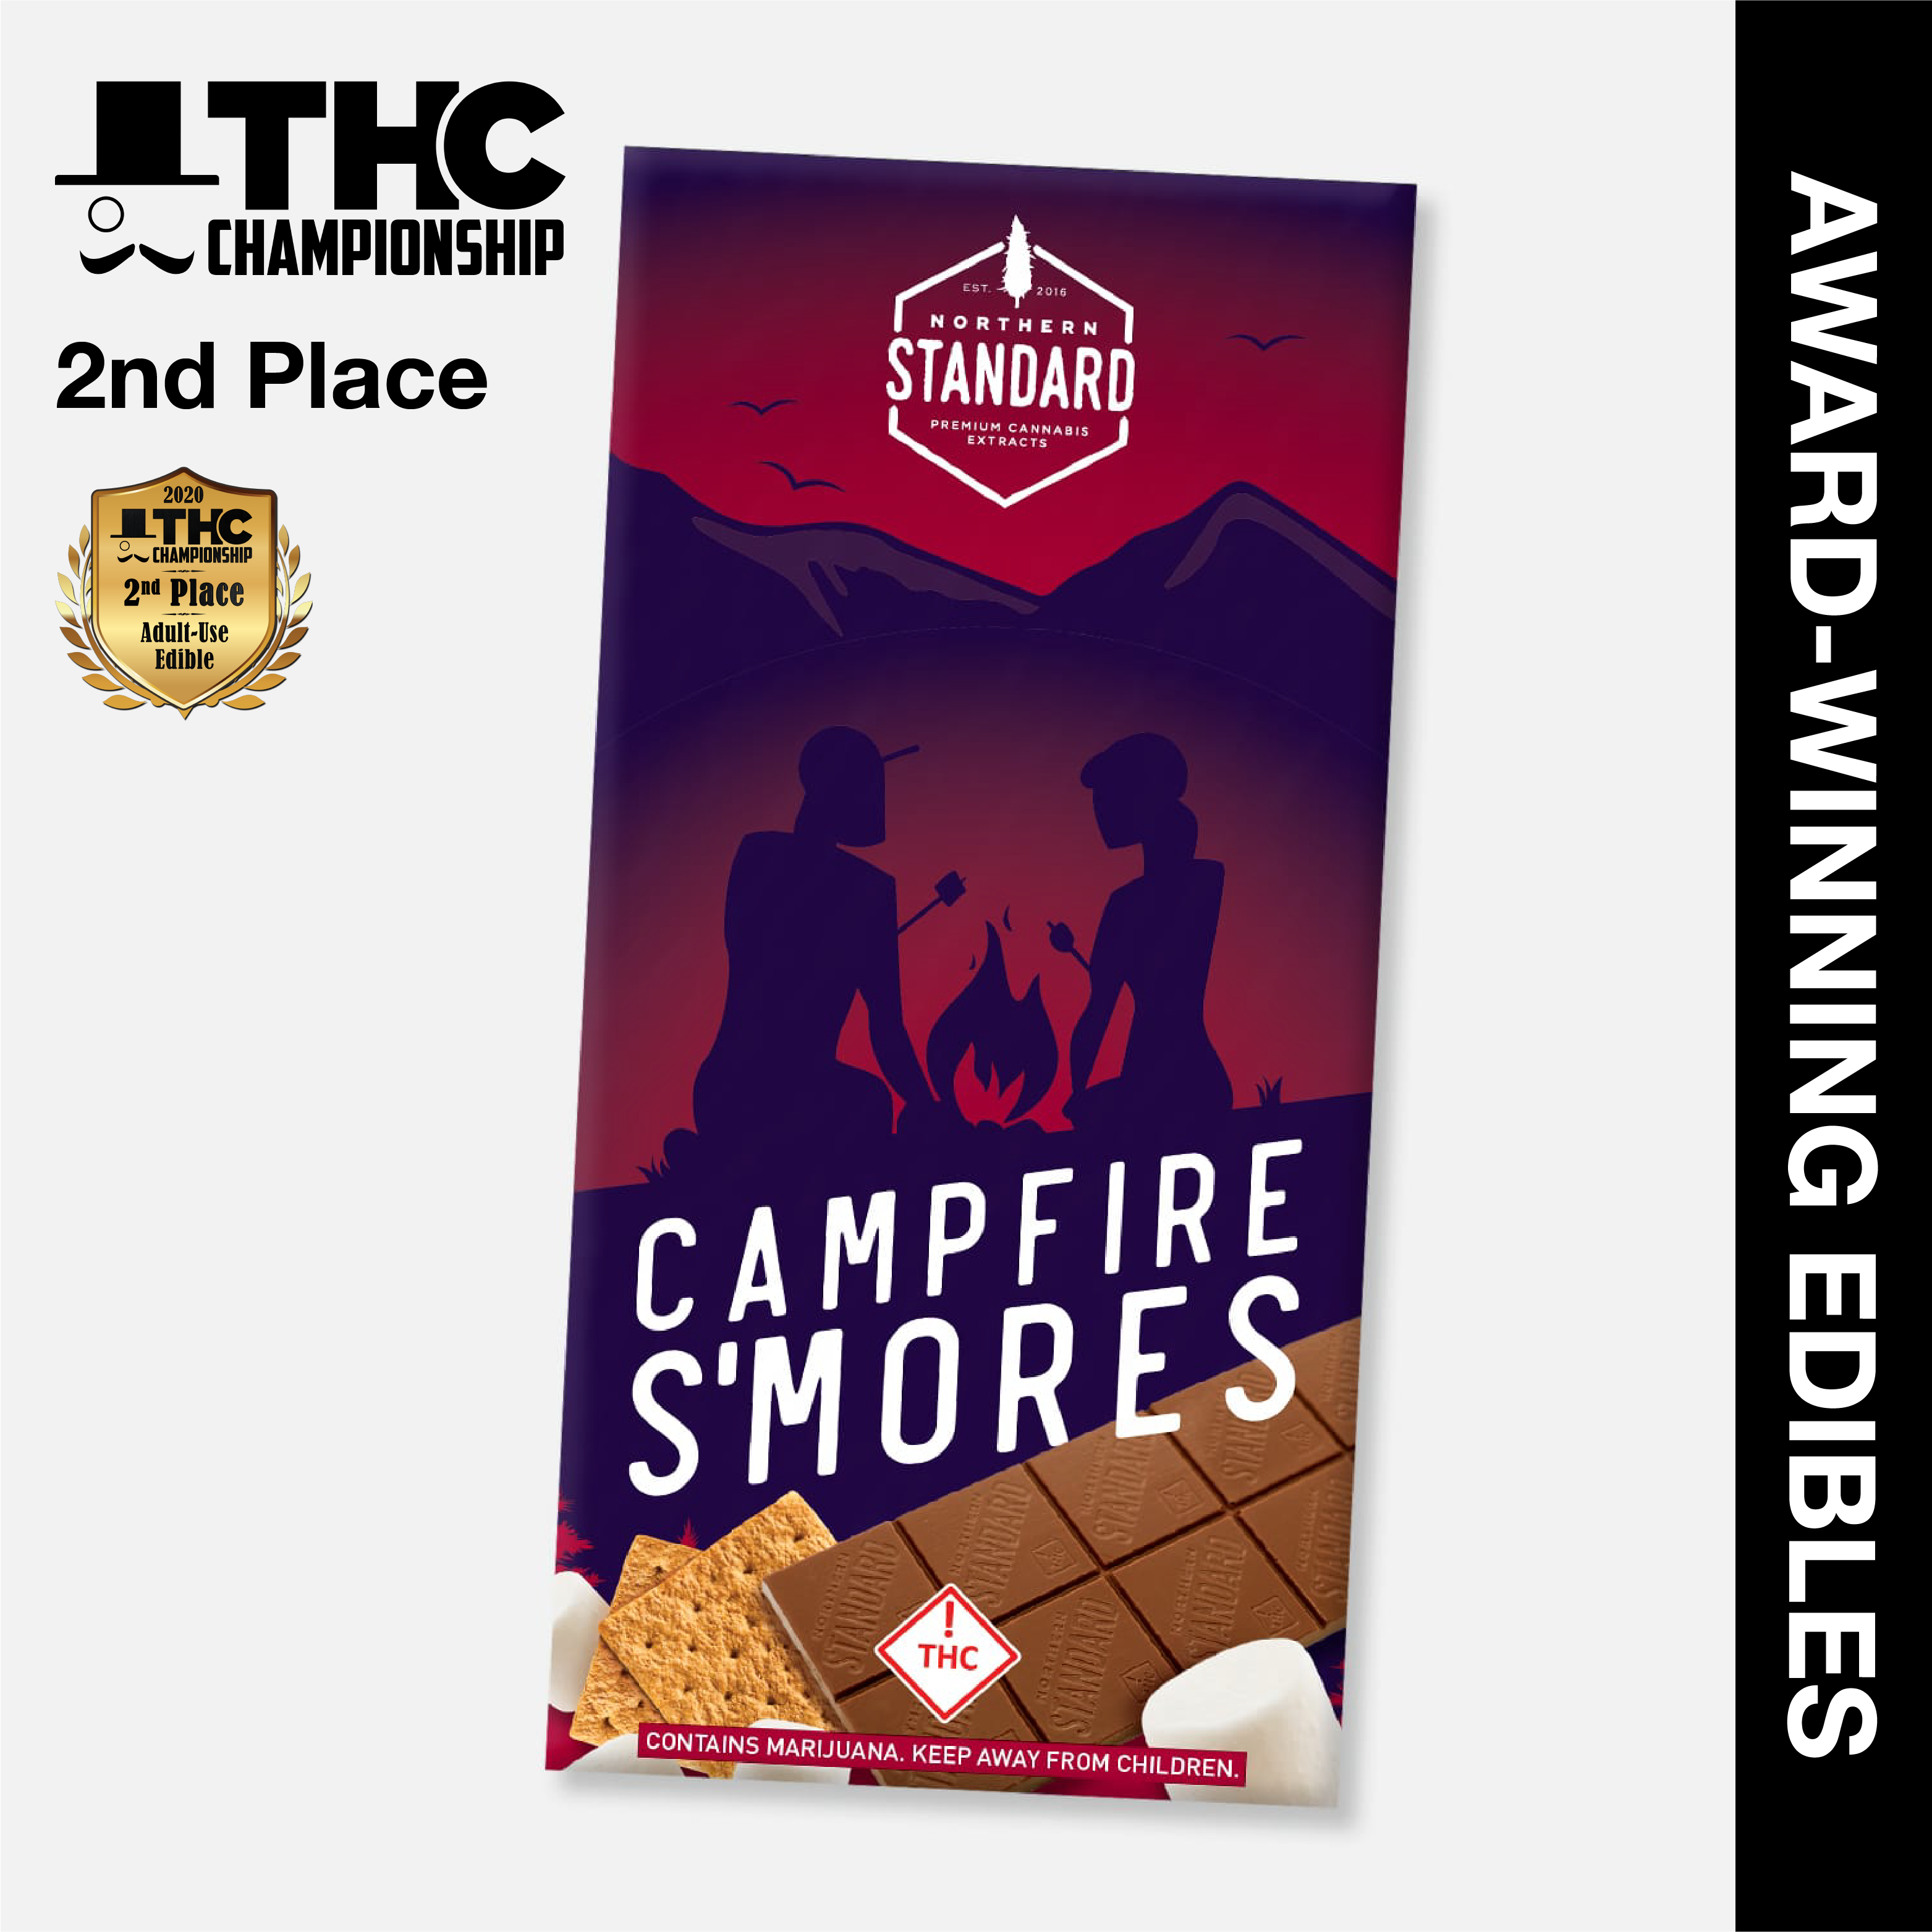 Campfire S'mores - THC Chocolate